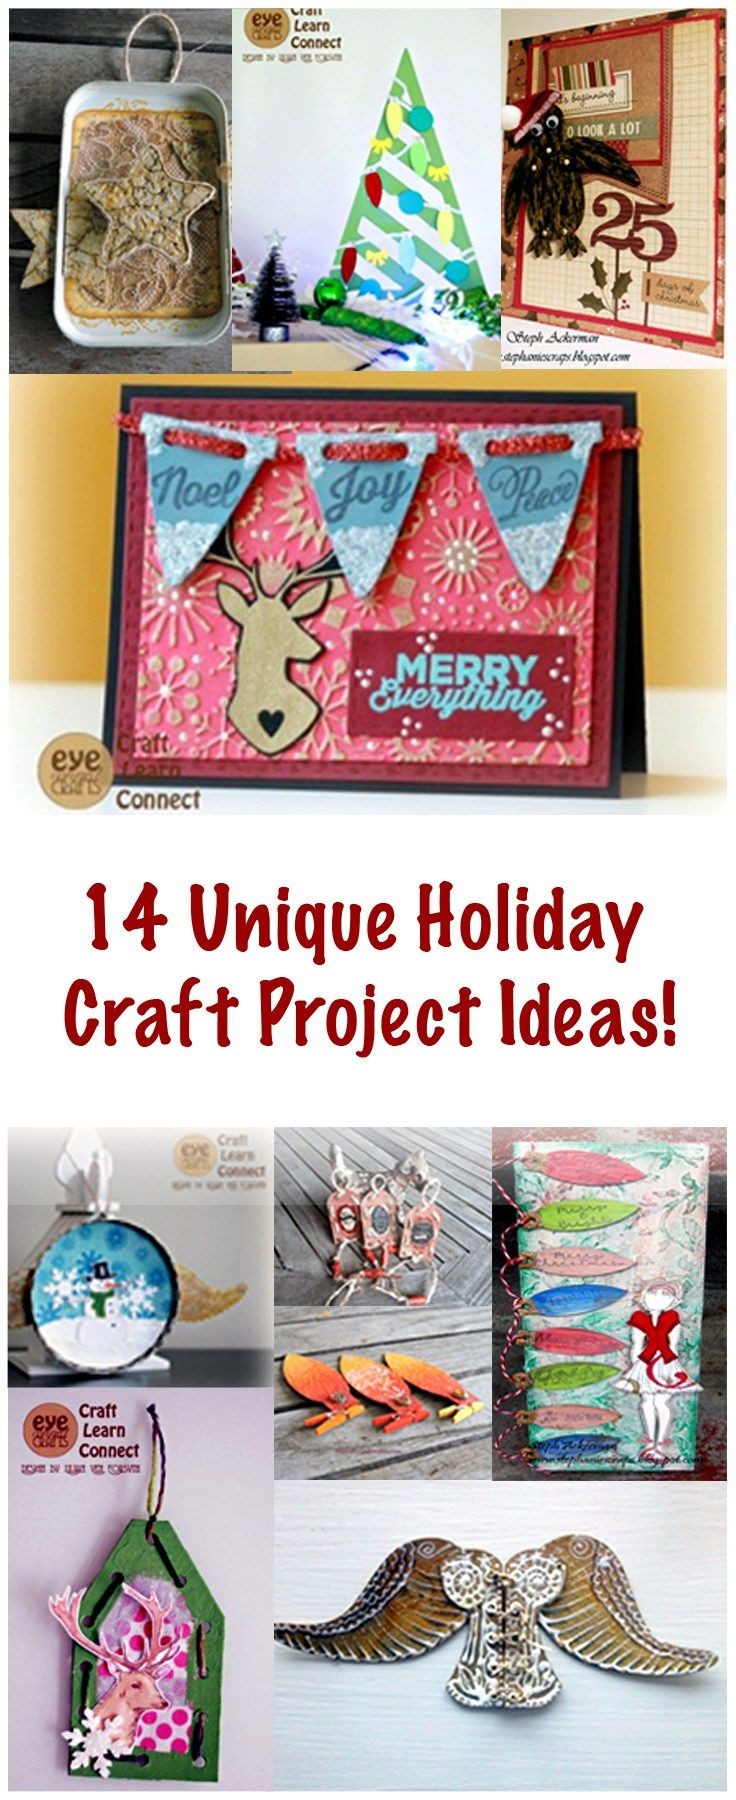 unique holiday craft project ideas crafting ideas for all year